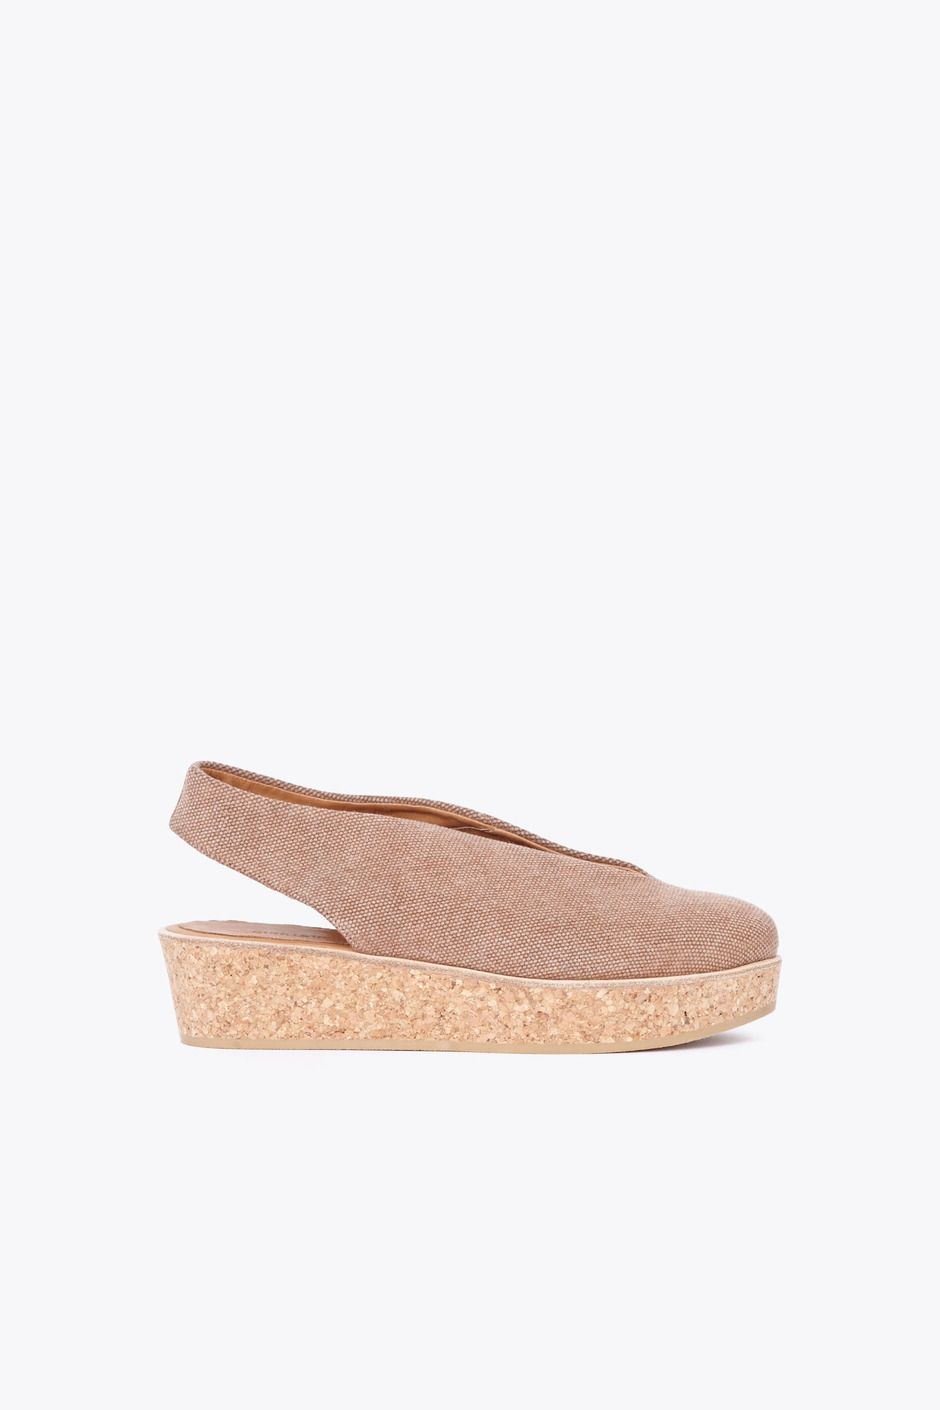 Reality Studio June Wedges (Sand Canvas)